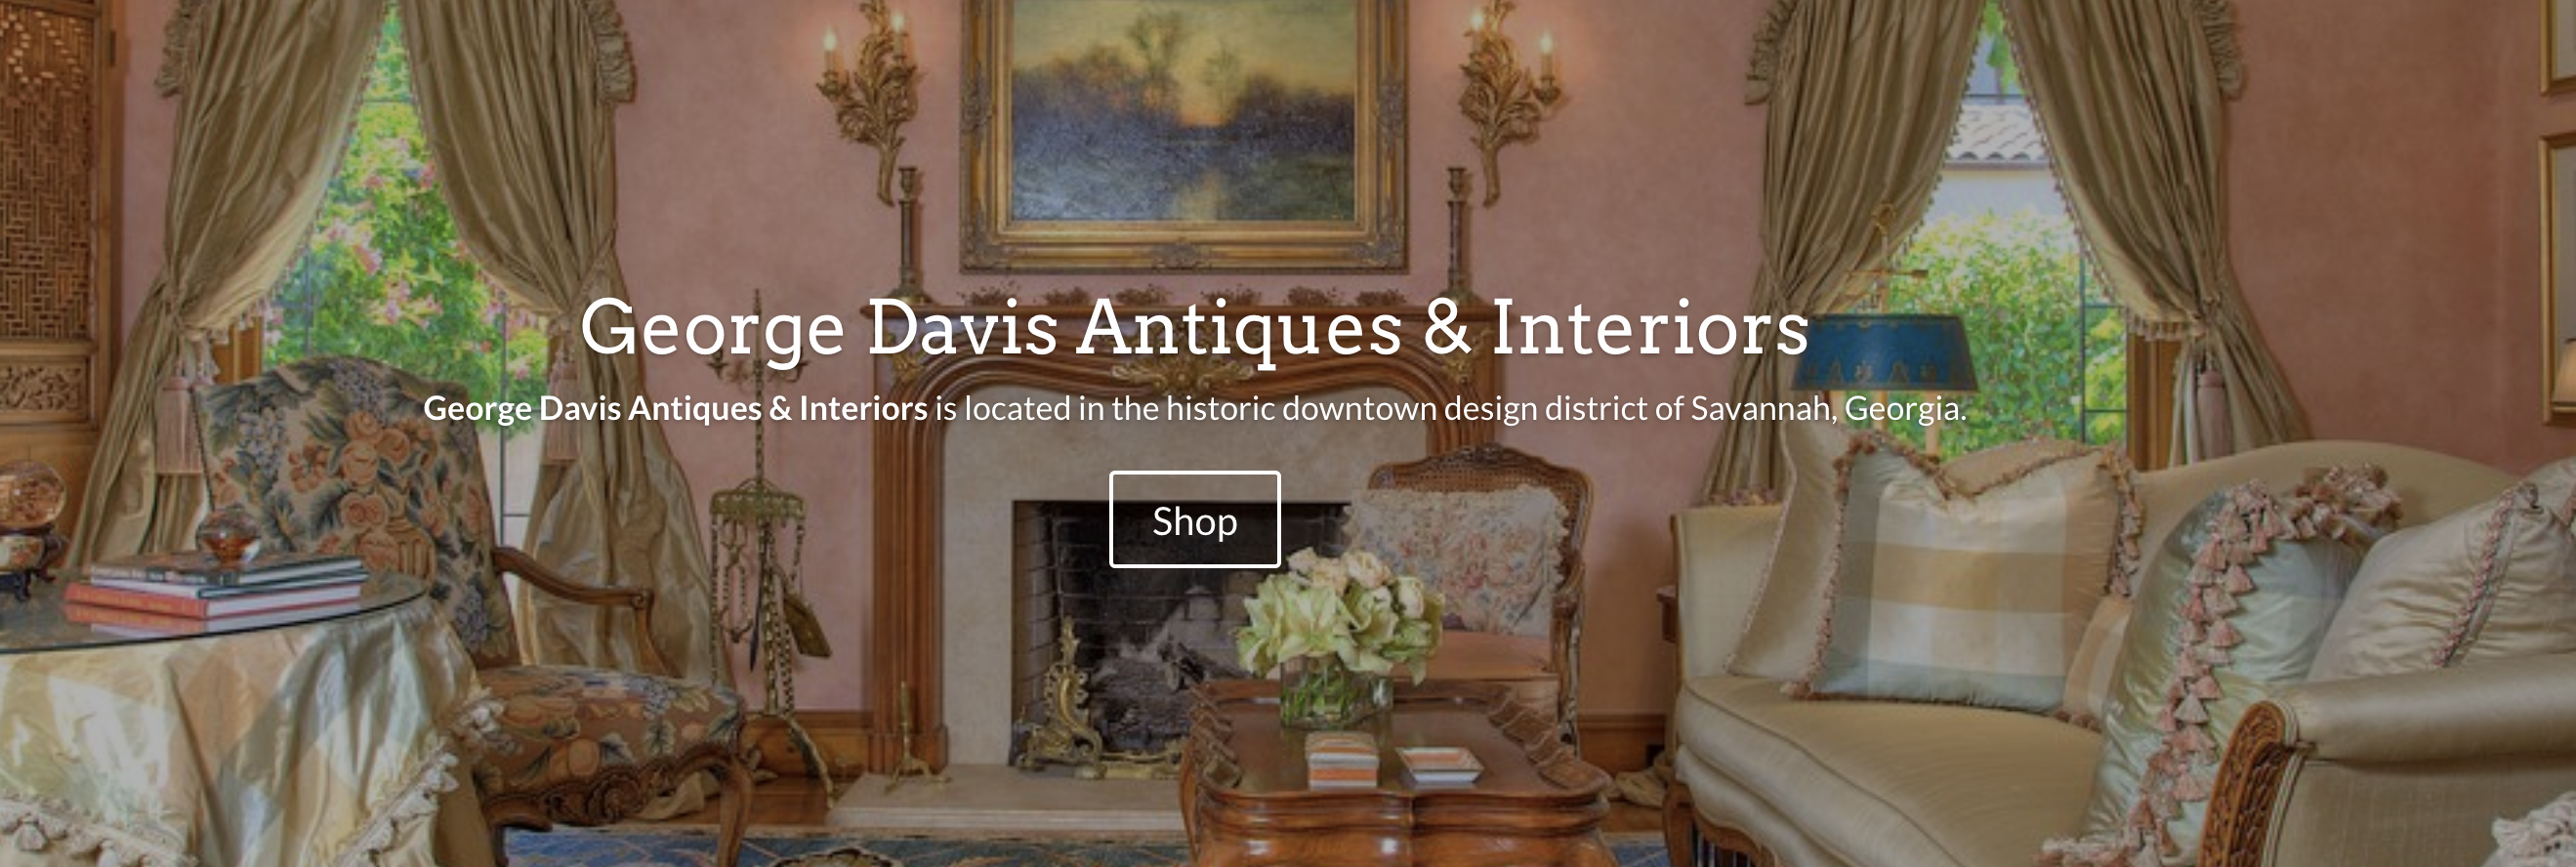 George Davis Antiques & Interiors